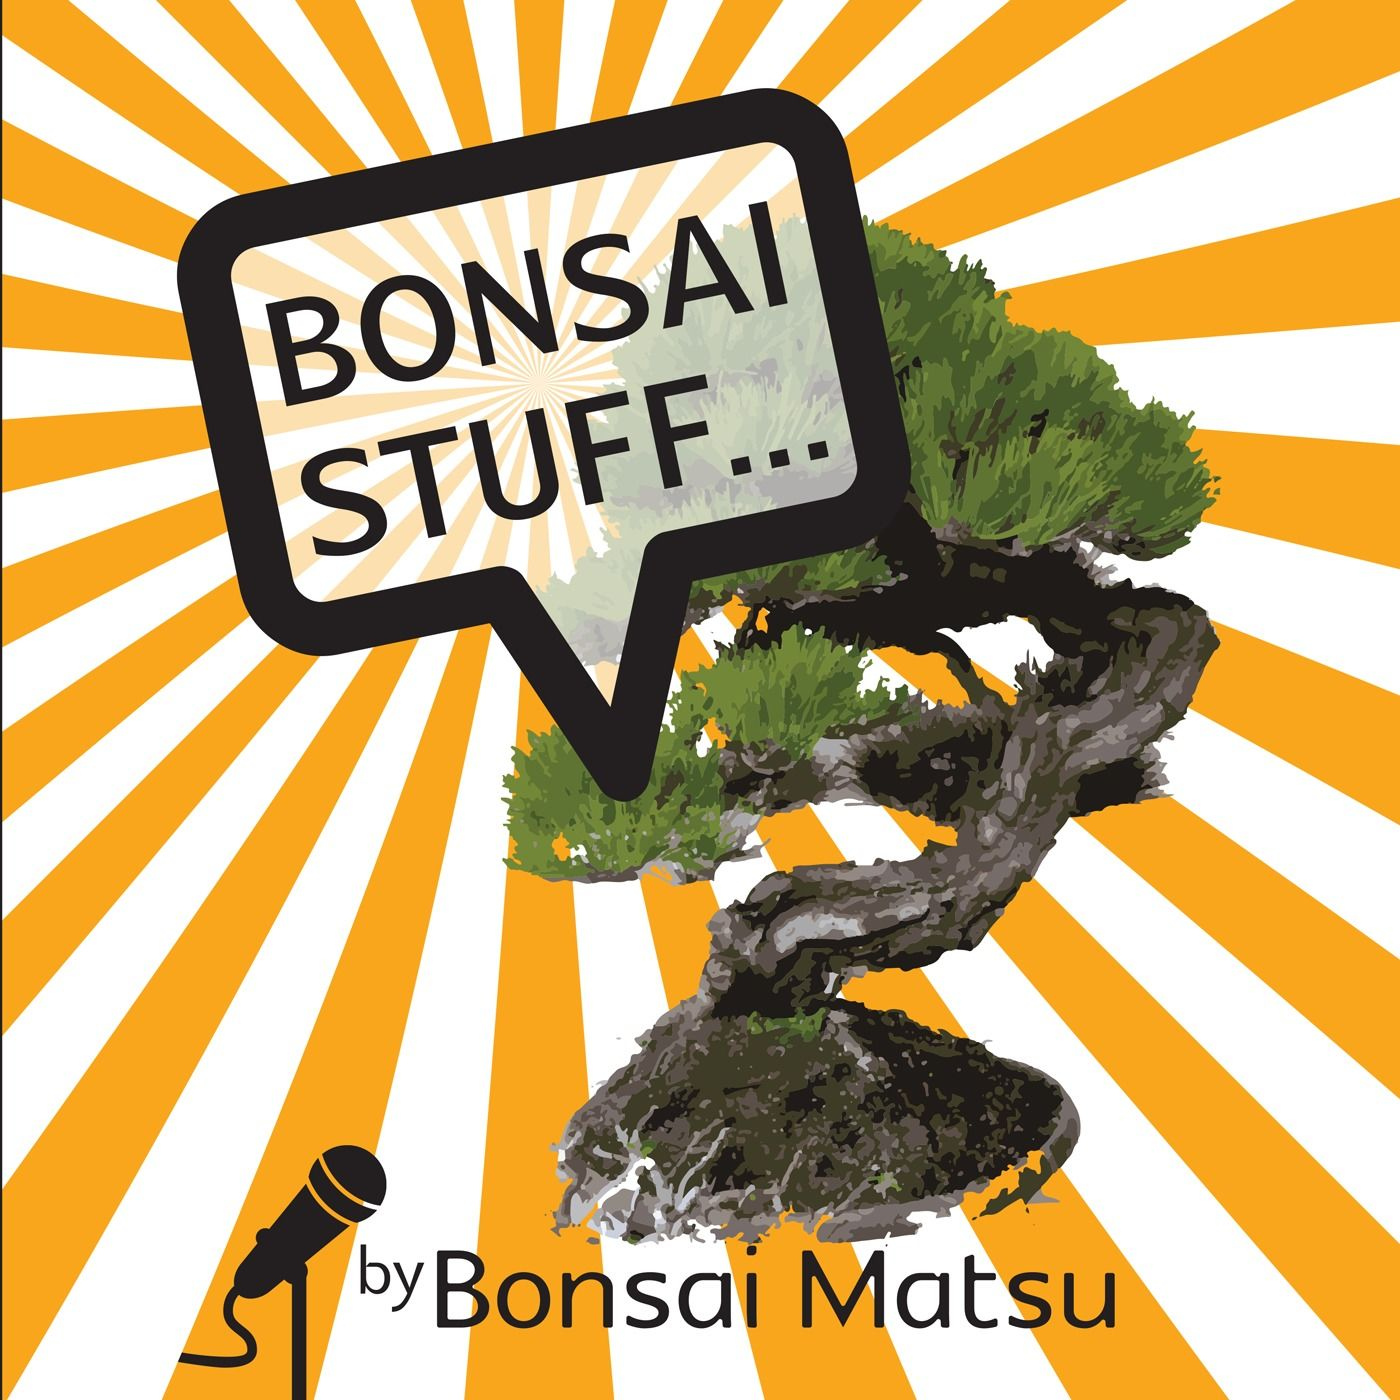 Bonsai Stuff